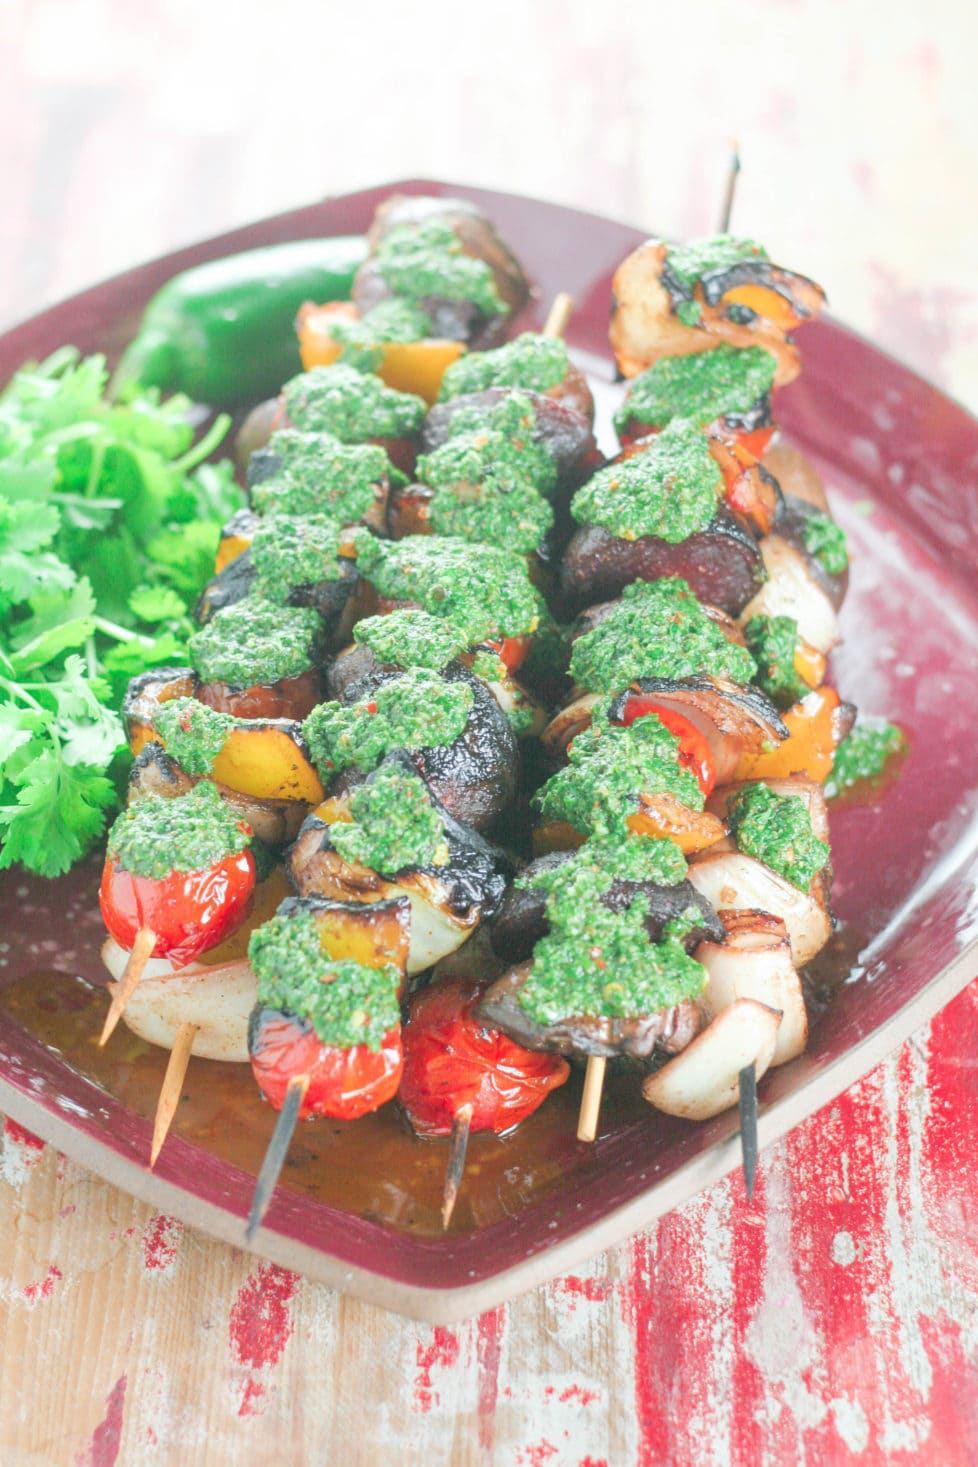 A plate of vegetable skewers fresh off the barbecue